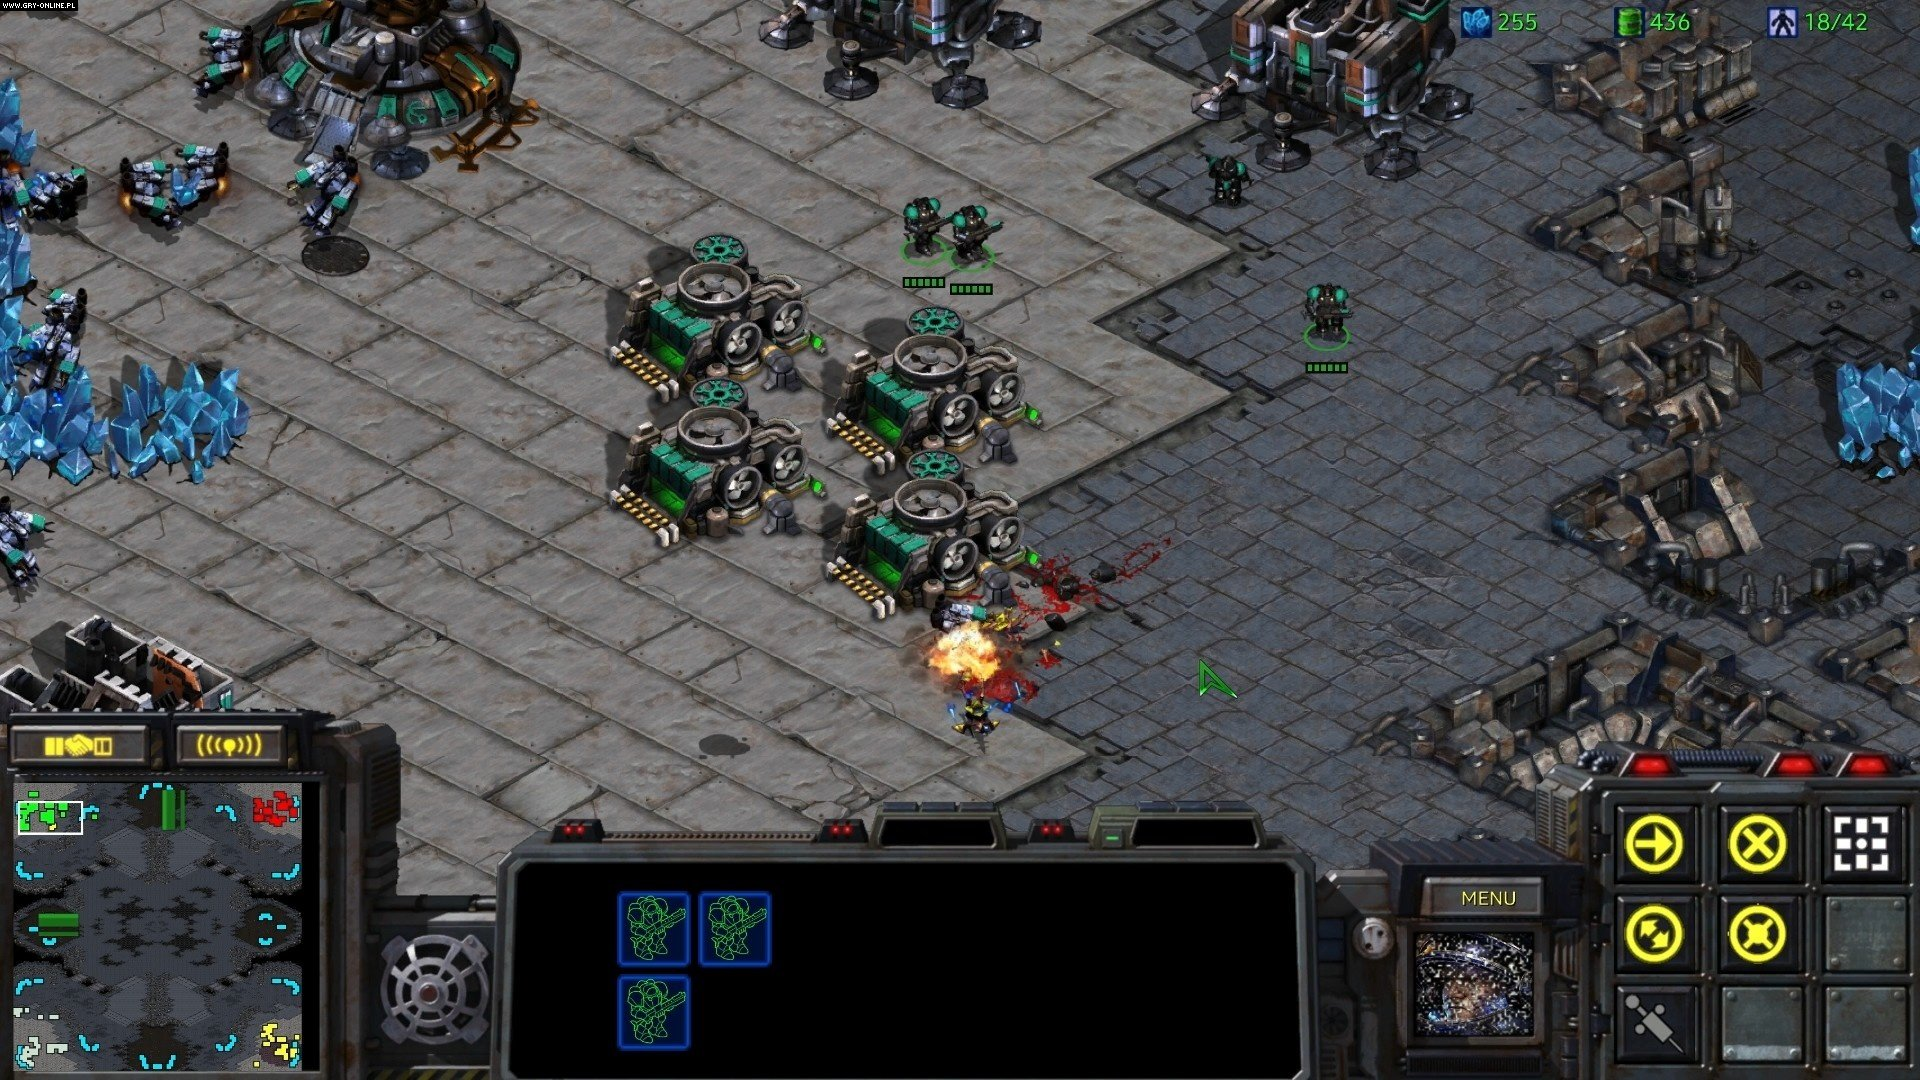 StarCraft: Remastered PC Gry Screen 4/15, Blizzard Entertainment